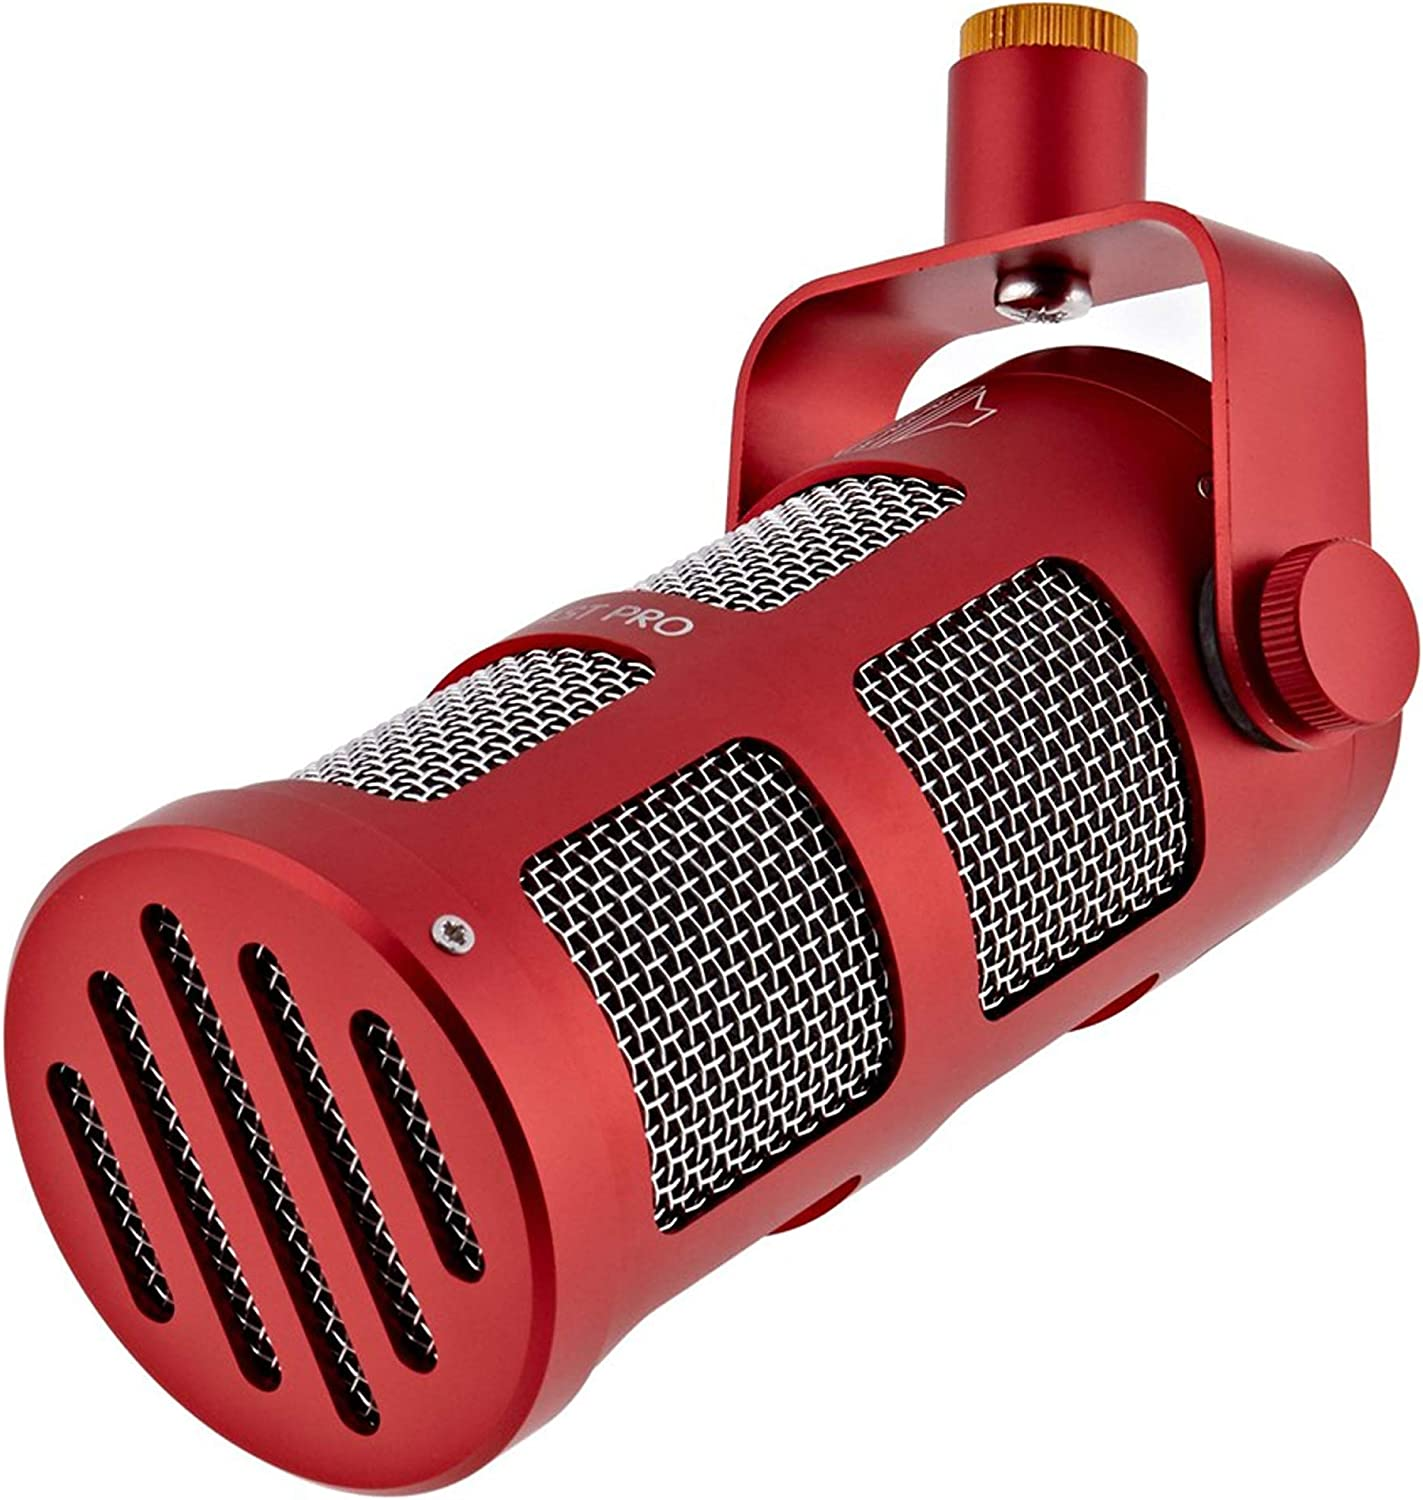 Sontronics PODCAST PRO Red dynamic microphone for podcast streaming /& video conference broadcast